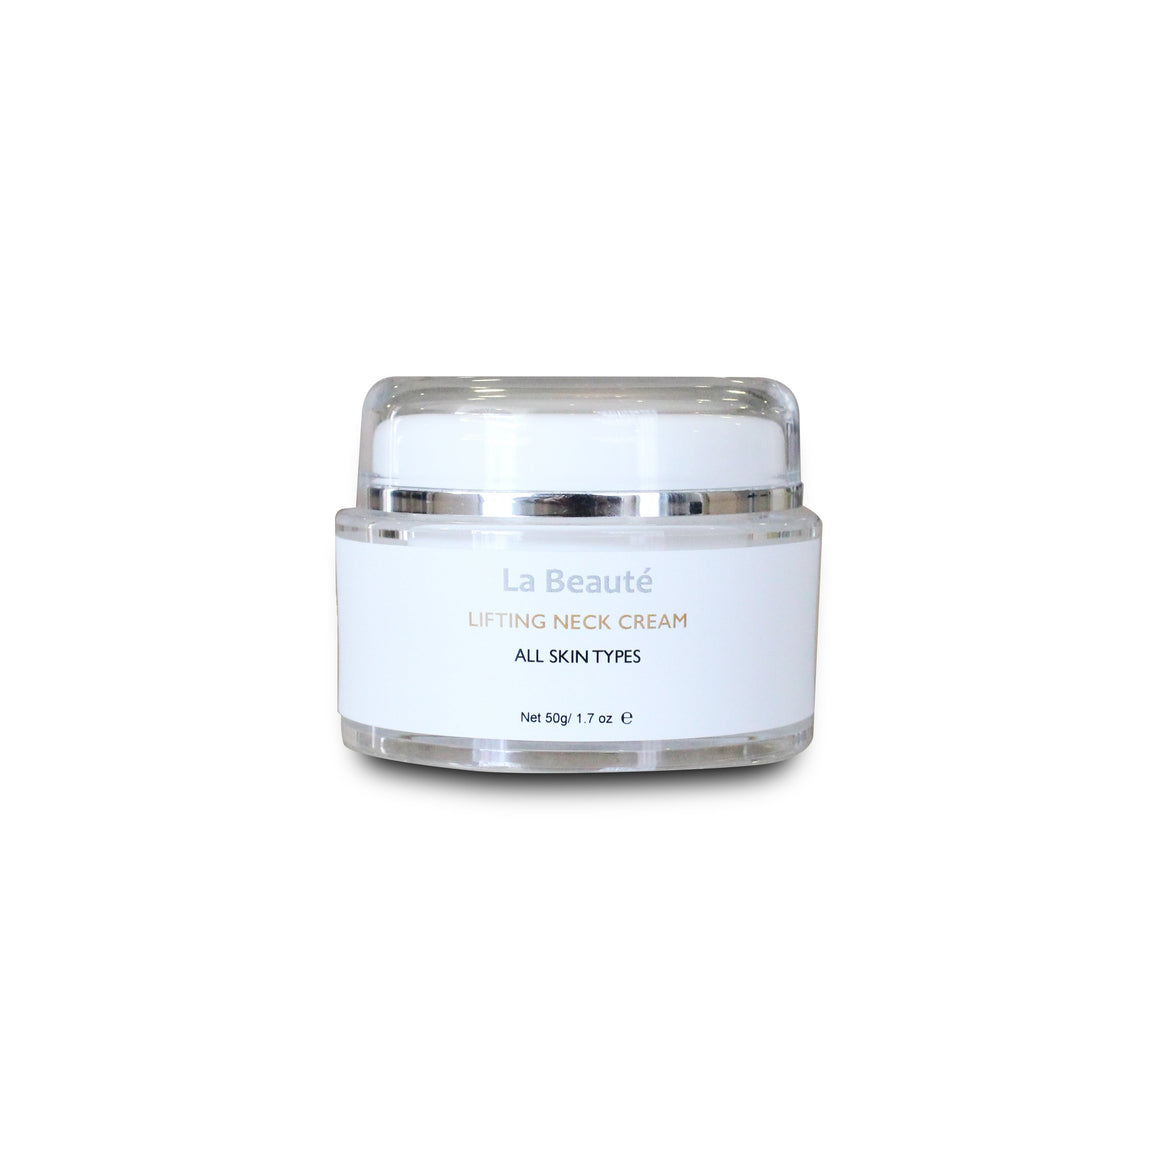 La Beaute -  Lifting Neck Cream 50g